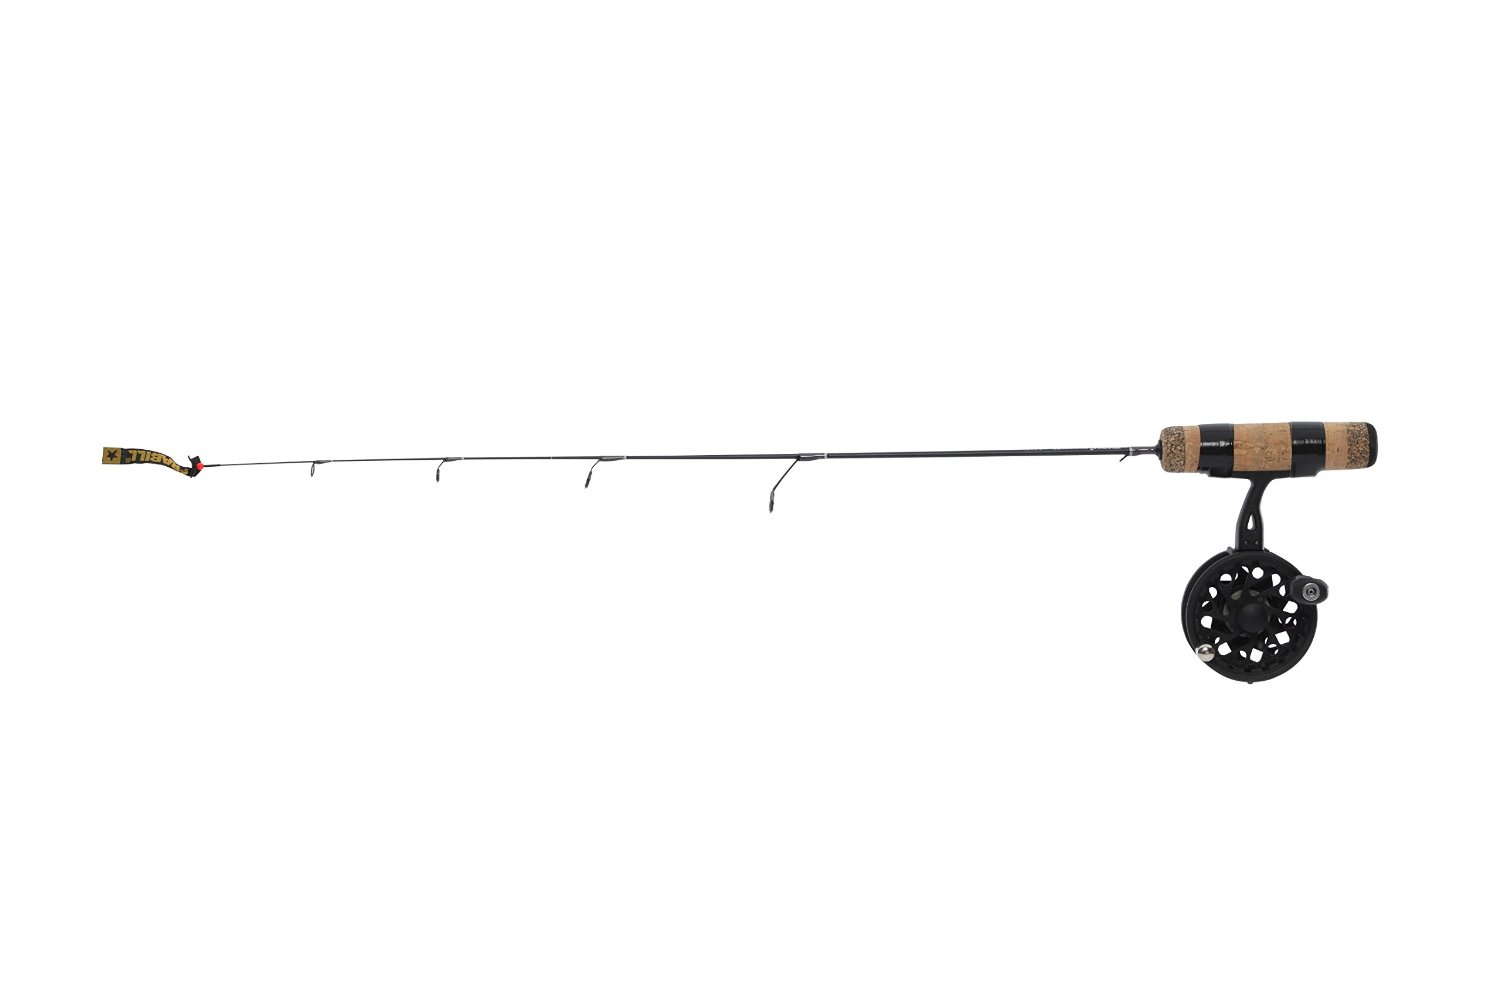 Frabill Straight Line 101XLA 27-Inch Quick Tip Ice Fishing Combo, Black